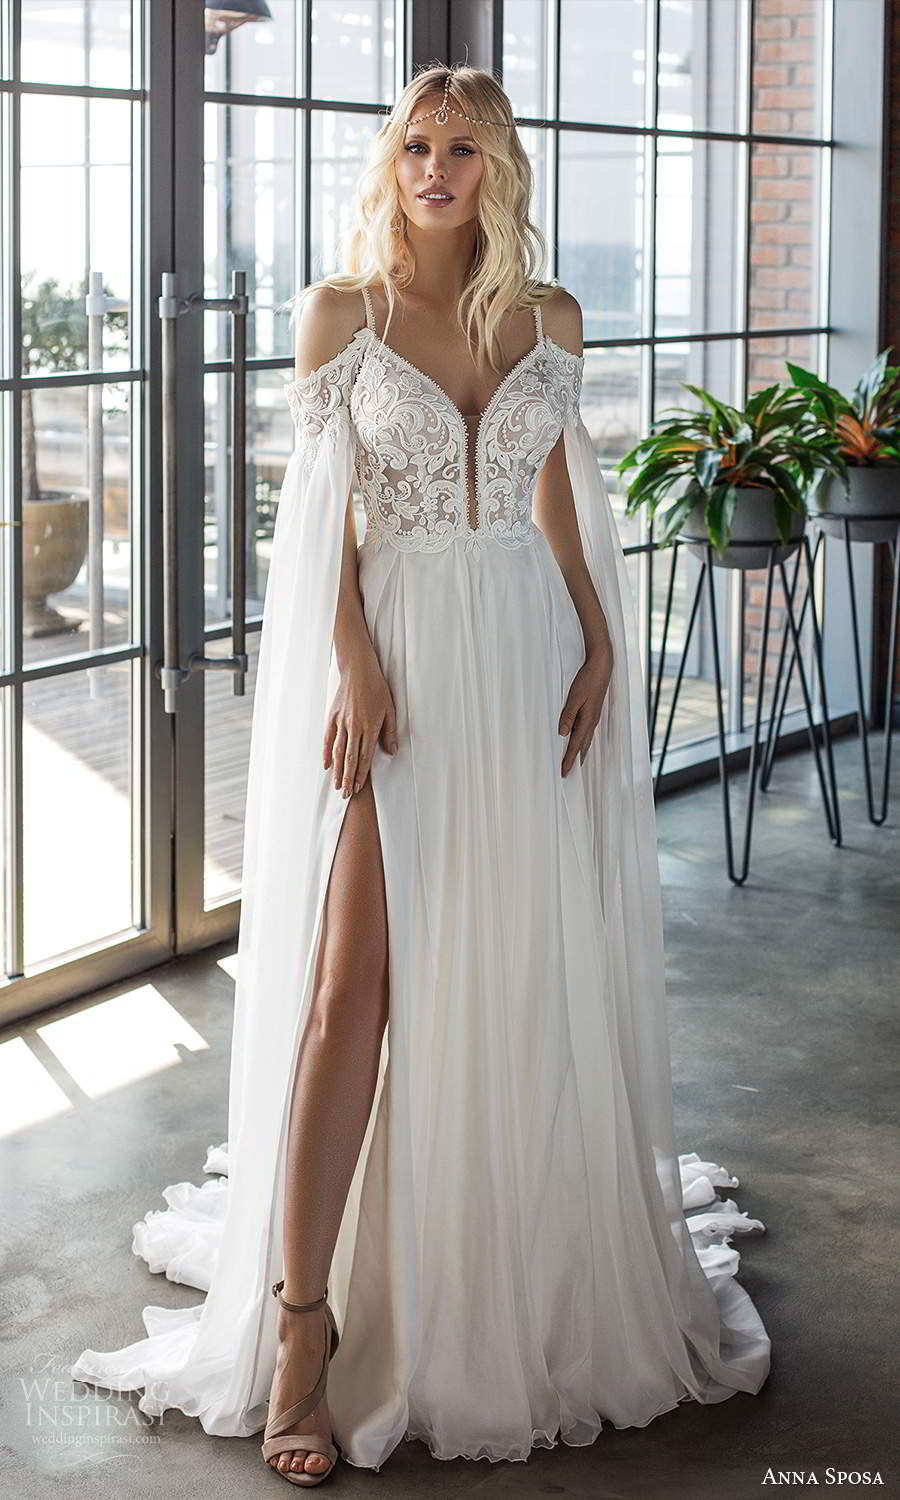 anna sposa 2021 boho bridal detached split long sleeves sleeveless straps plunging sweetheart neckline embellished bodice a line wedding dress slit skirt chapel train (1) mv